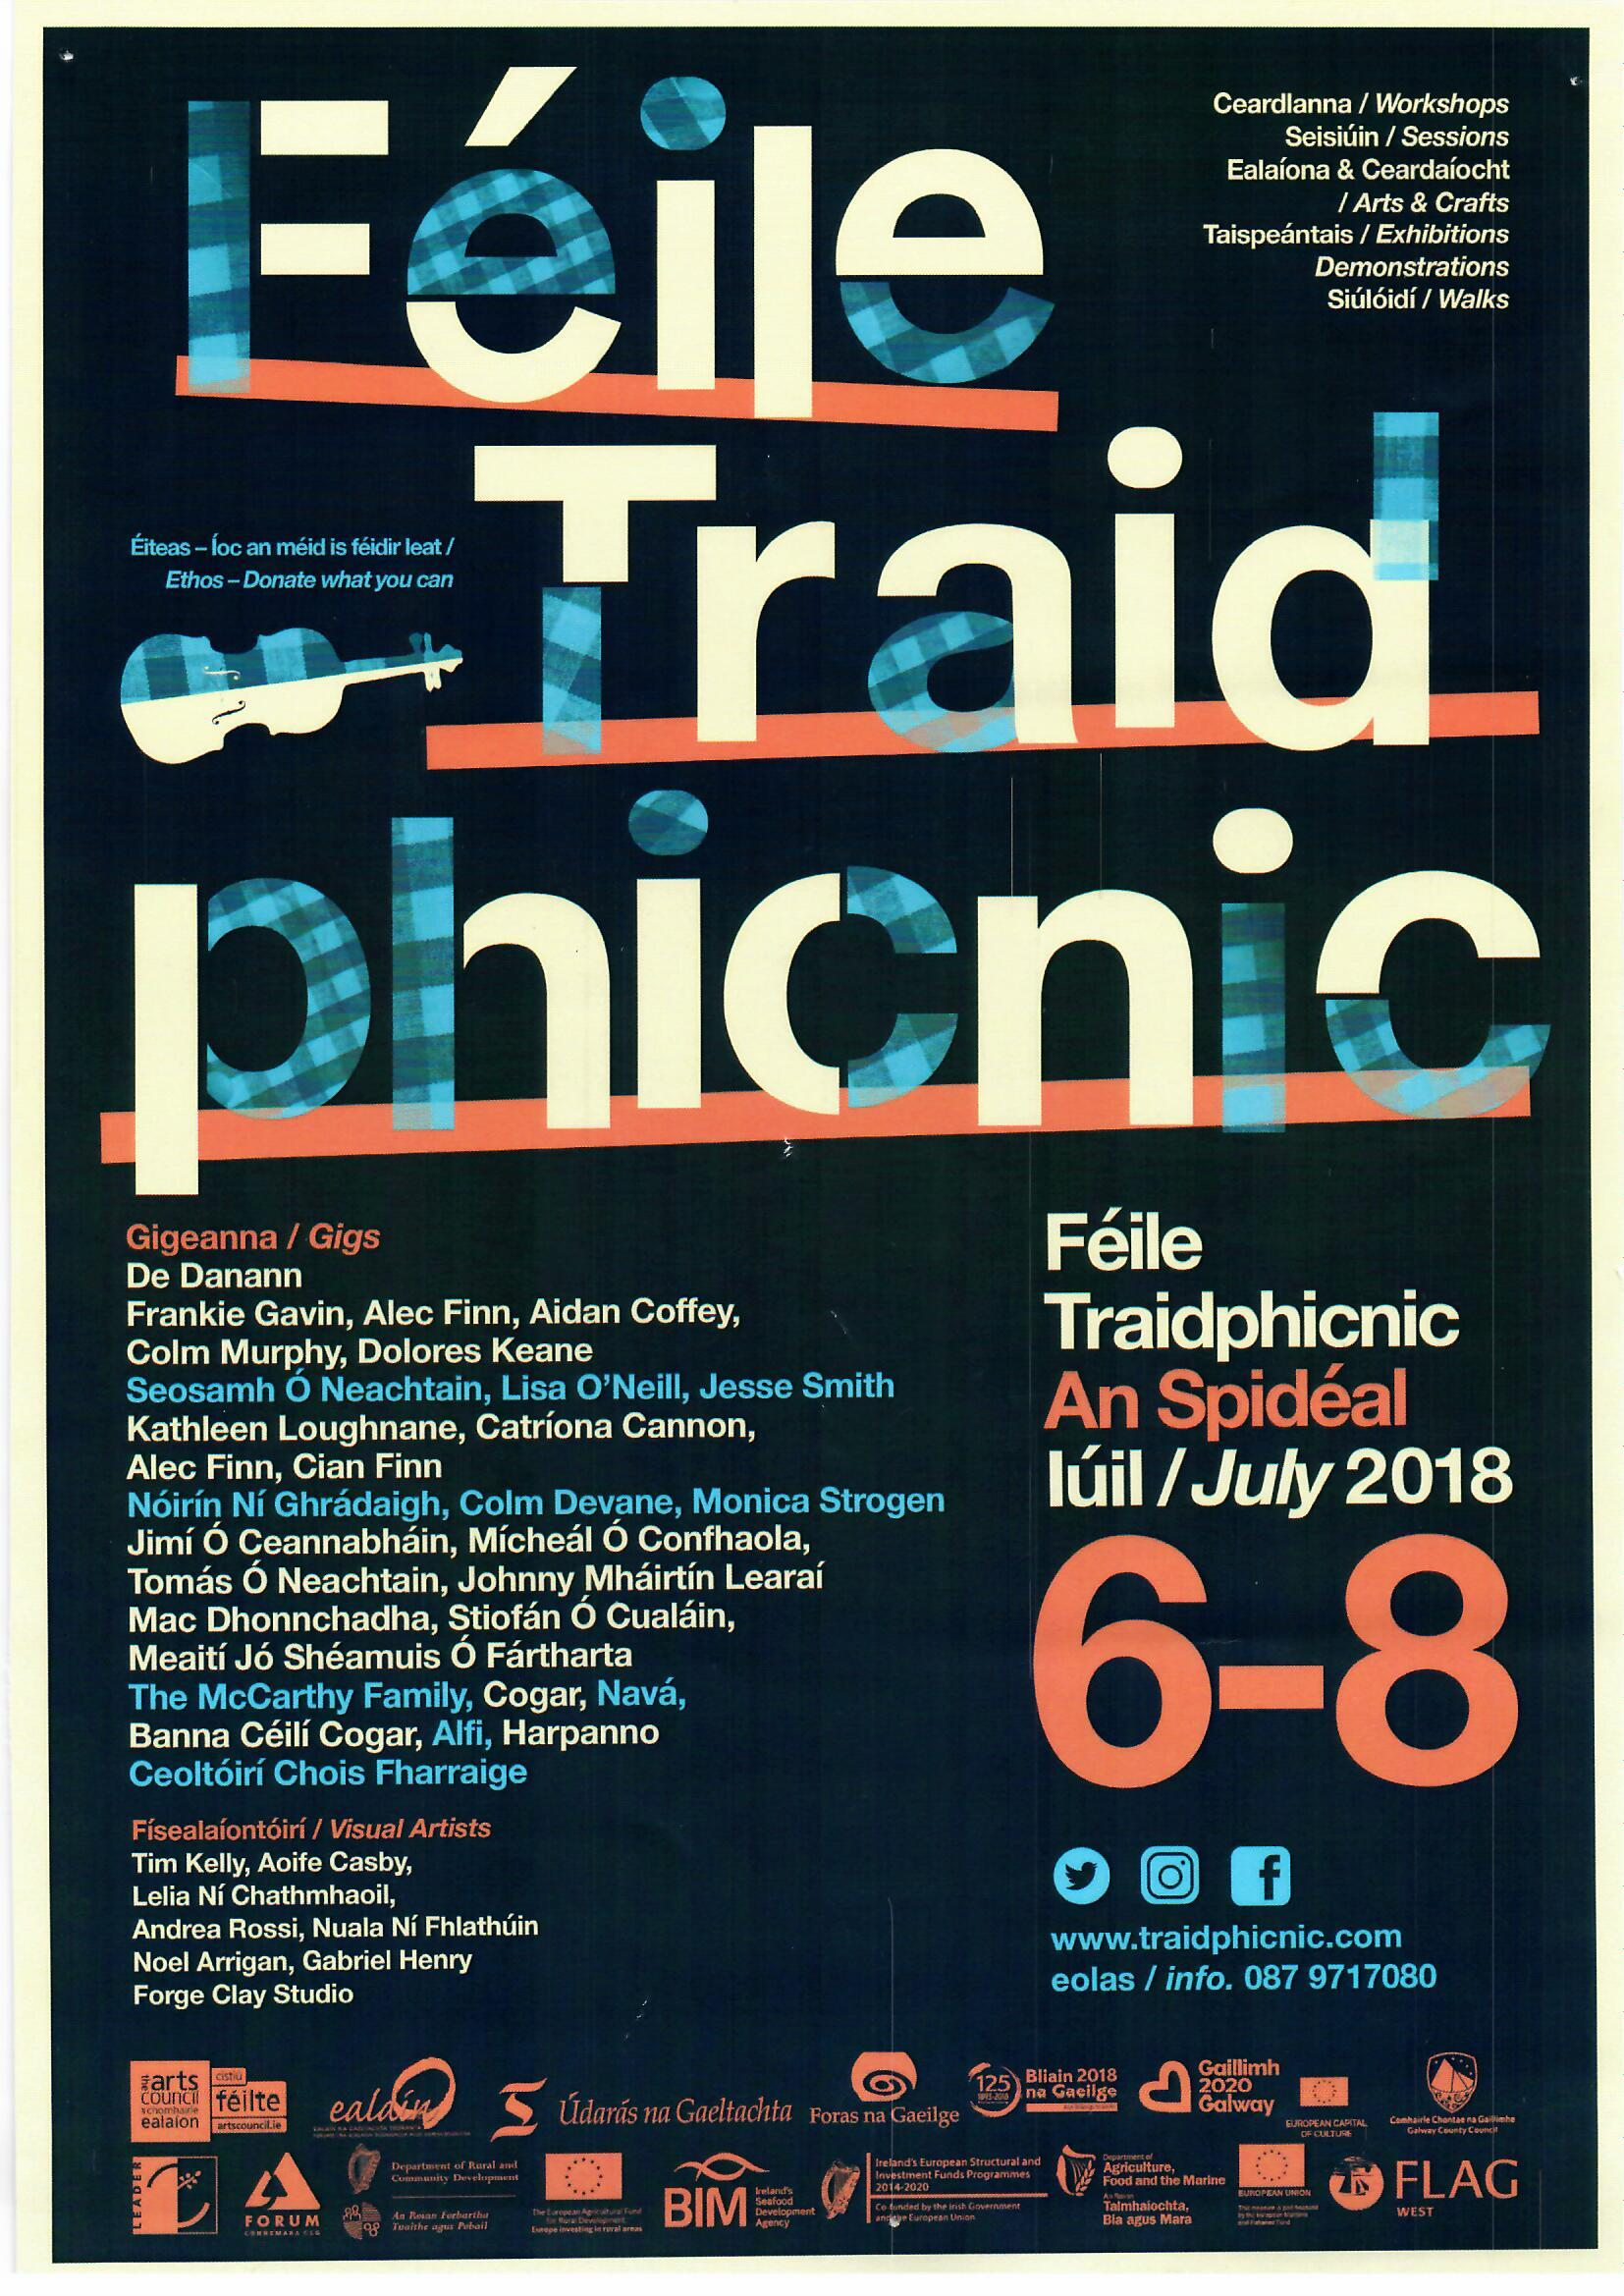 Traad festival Spiddal 6 to 8 July 2018